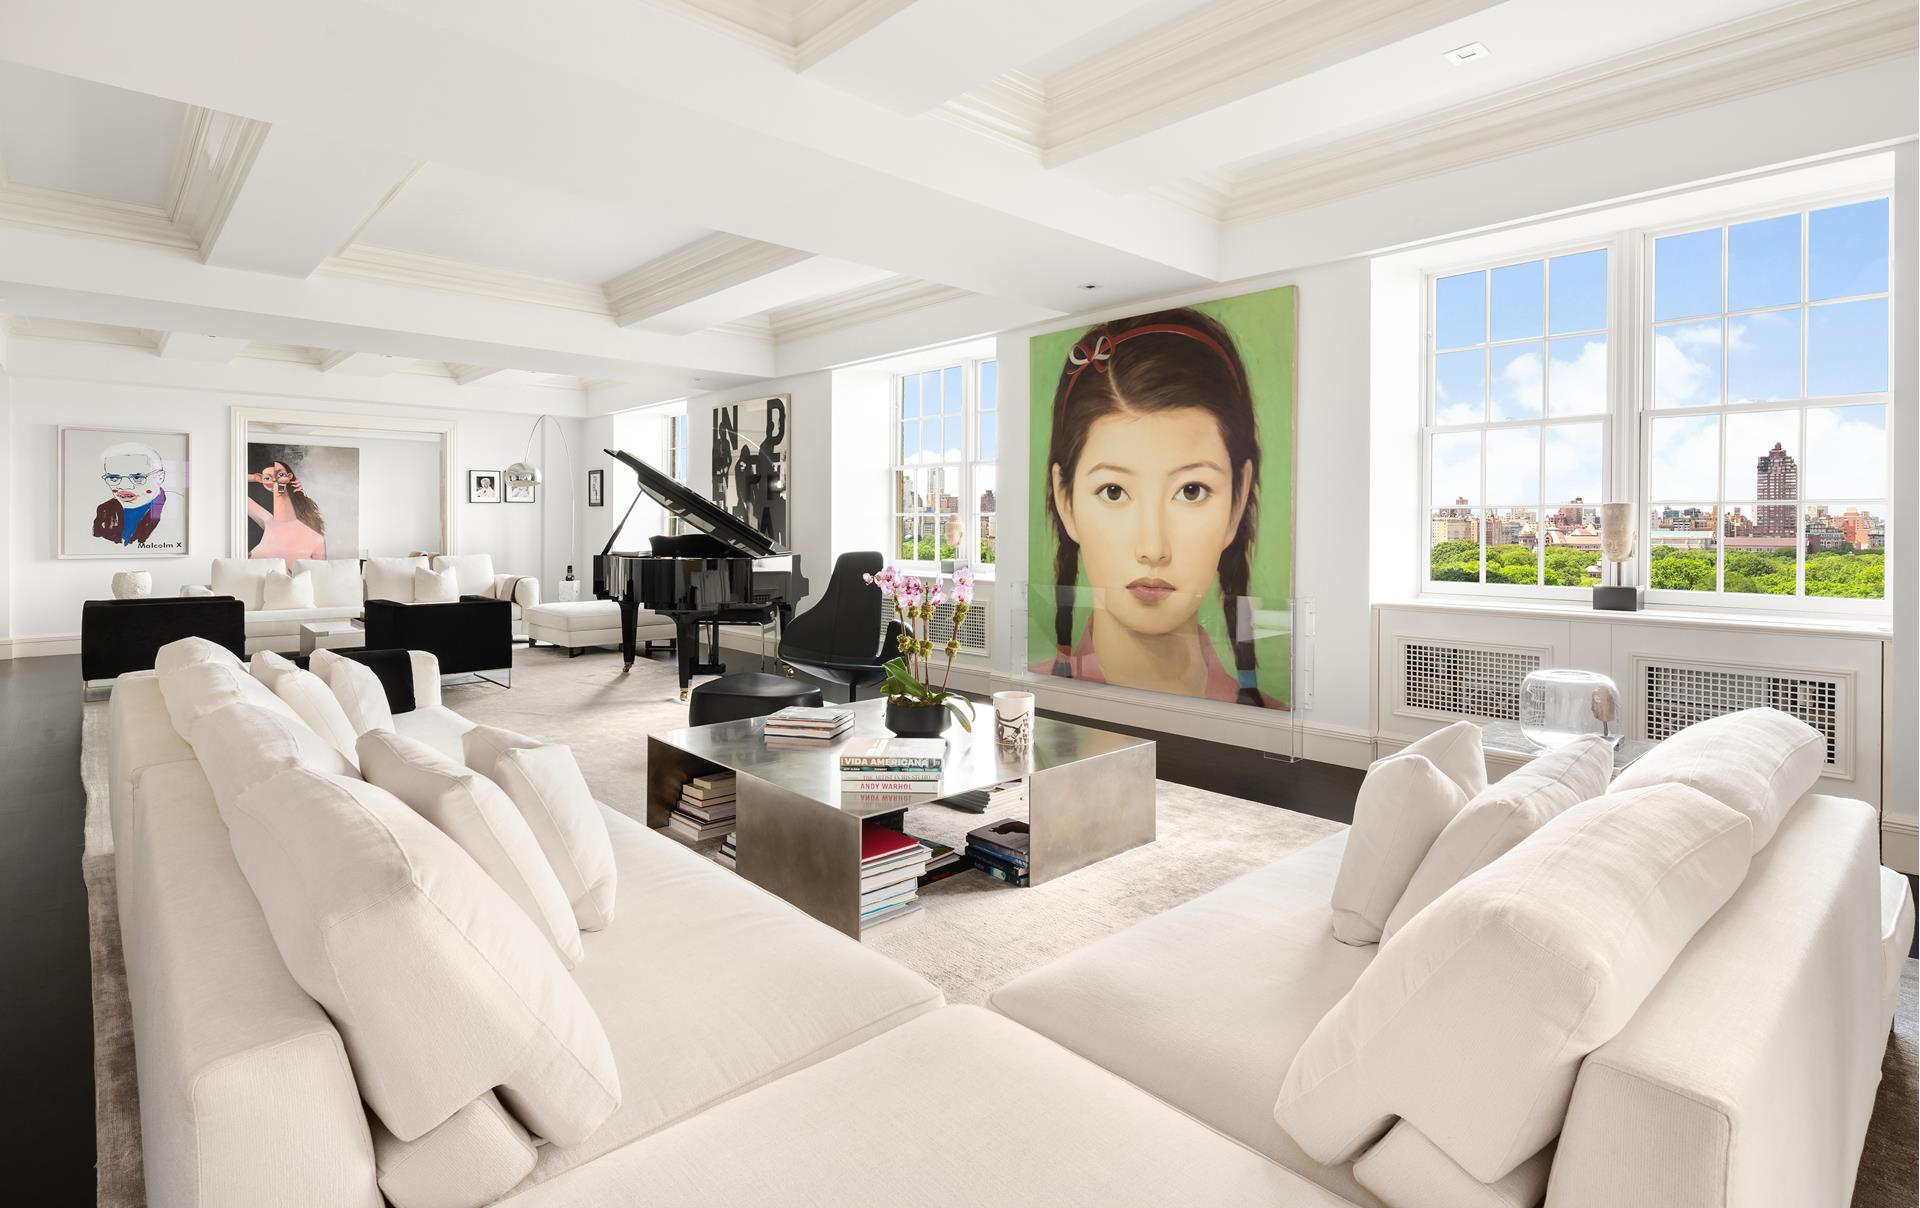 Elegance surrounds you in this expansive full-floor 7/8 bedroom, 9.5 bathroom masterpiece perched on the top story of the premier 995 Fifth Avenue. The former ballroom for The Stanhope, the 16th floor is the only residence in the building that enjoys such   lofty ceiling heights, rising 10 feet in a striking coffered design. Bathed in natural light and finished and restored to perfection, the luxury Upper East Side gem impresses with magnificent views, custom features galore, a specialized home automation system,   and private elevator entry welcoming you into awe-inspiring living space by JANGEORGe Interiors and Furniture. Oversized windows on 4 exposures showcase sweeping vistas capturing Central Park, The Metropolitan Museum of Art, George Washington Bridge, and dramatic   city skylines. Stunning black-stained white oak wood and black antique stone tile flooring enhance warmth and sophistication. Display your fine works of art on generous wall space afforded in the gracious gallery and magnificent 42' great room where entertaining   is divine. This breathtaking open-concept backdrop provides versatility for various living and seating arrangements and is perfect for hosting, complemented by a spacious open dining room in the corner and handsome library on the park. The knockout Smallbone   of Devizes kitchen with a large open breakfast area is not just stylish, but well-proportioned and highly functional, featuring abundant cabinet and countertop space and a center island with seating. Chef's quarters are also appointed with top-of-the-line   stainless steel appliances for the consummate host including Viking ovens, cooktop, warming drawer and range hood, a Subzero refrigerator and wine cooler, plus Miele dishwashers, microwave, and built-in espresso/coffee maker. Your glorious primary suite with   southwestern views, a sitting room with wood-burning fireplace, dressing area and his/her marble-clad spa baths is the ultimate place to renew. Additional bedroom suite